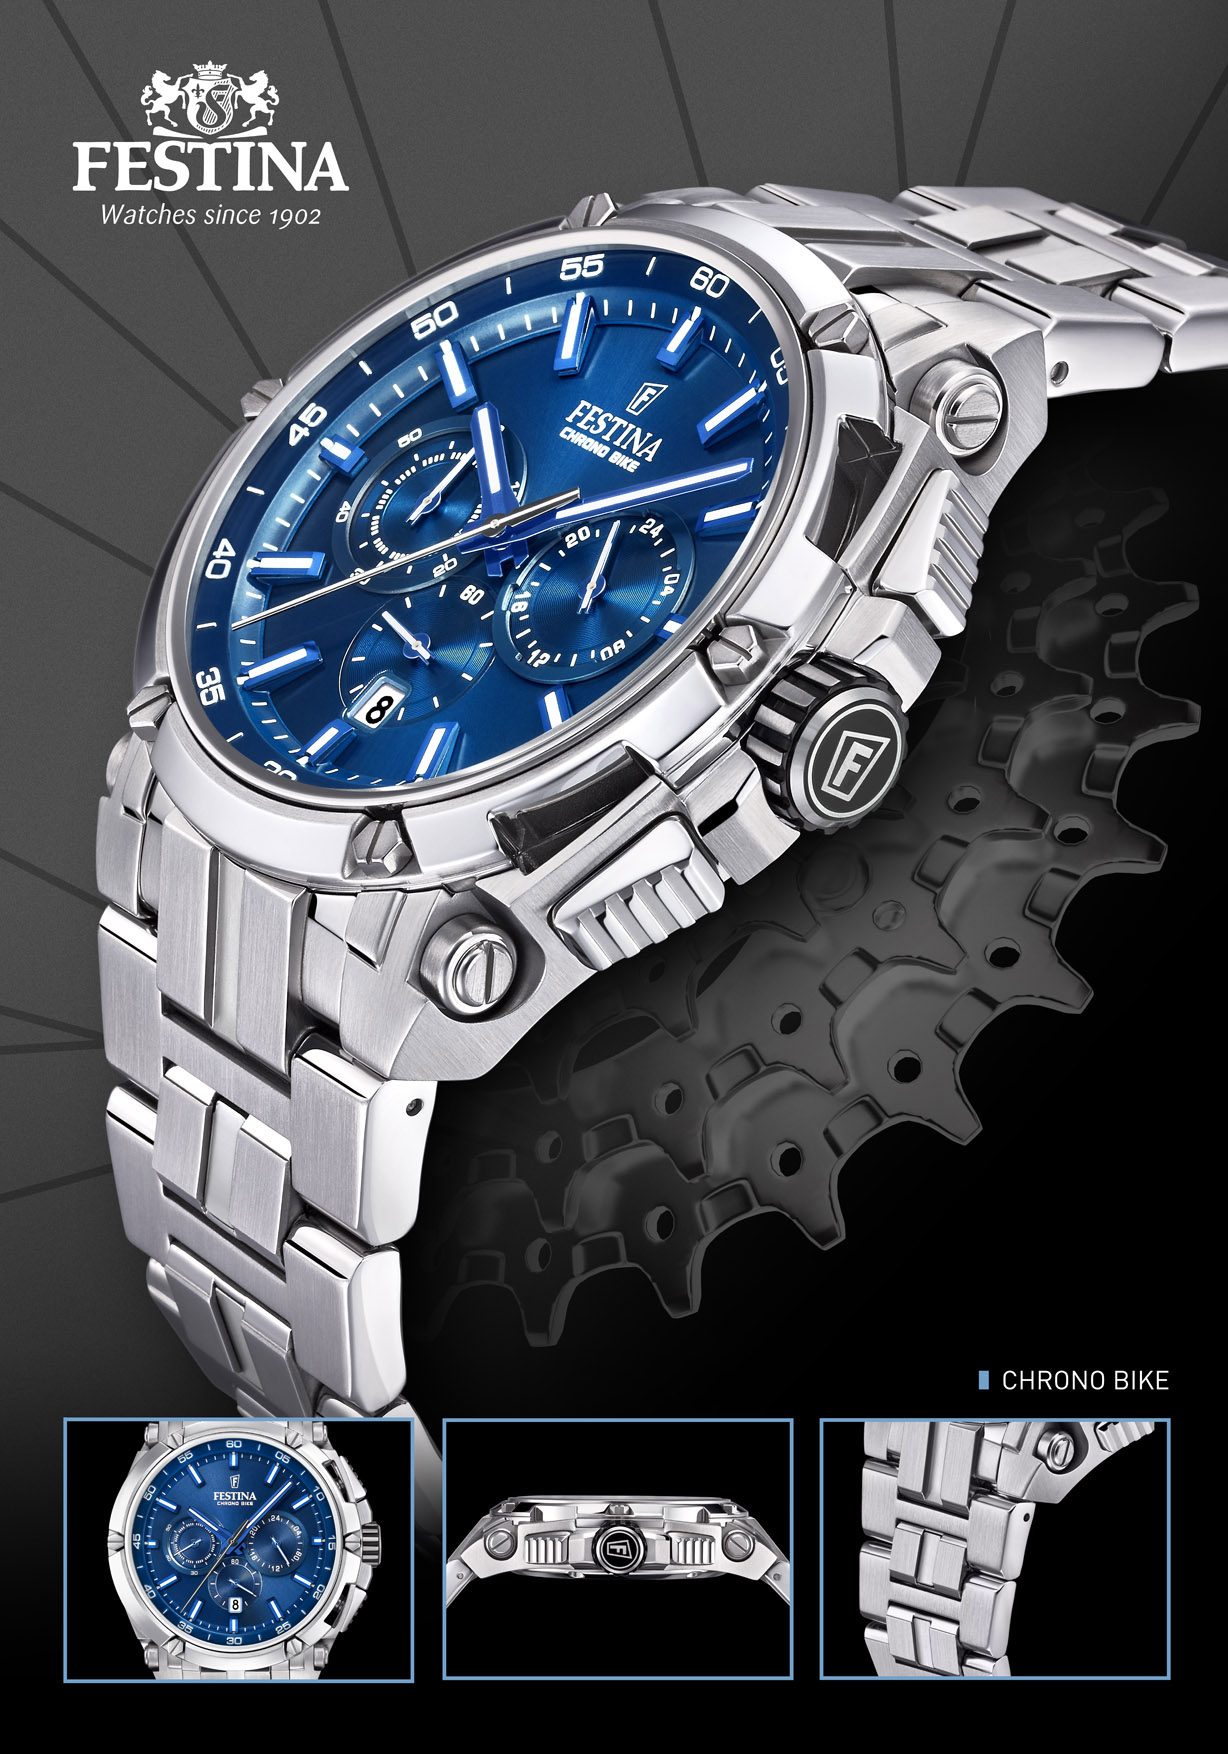 CHRONO BIKE ART 20327_3 70X100 copia